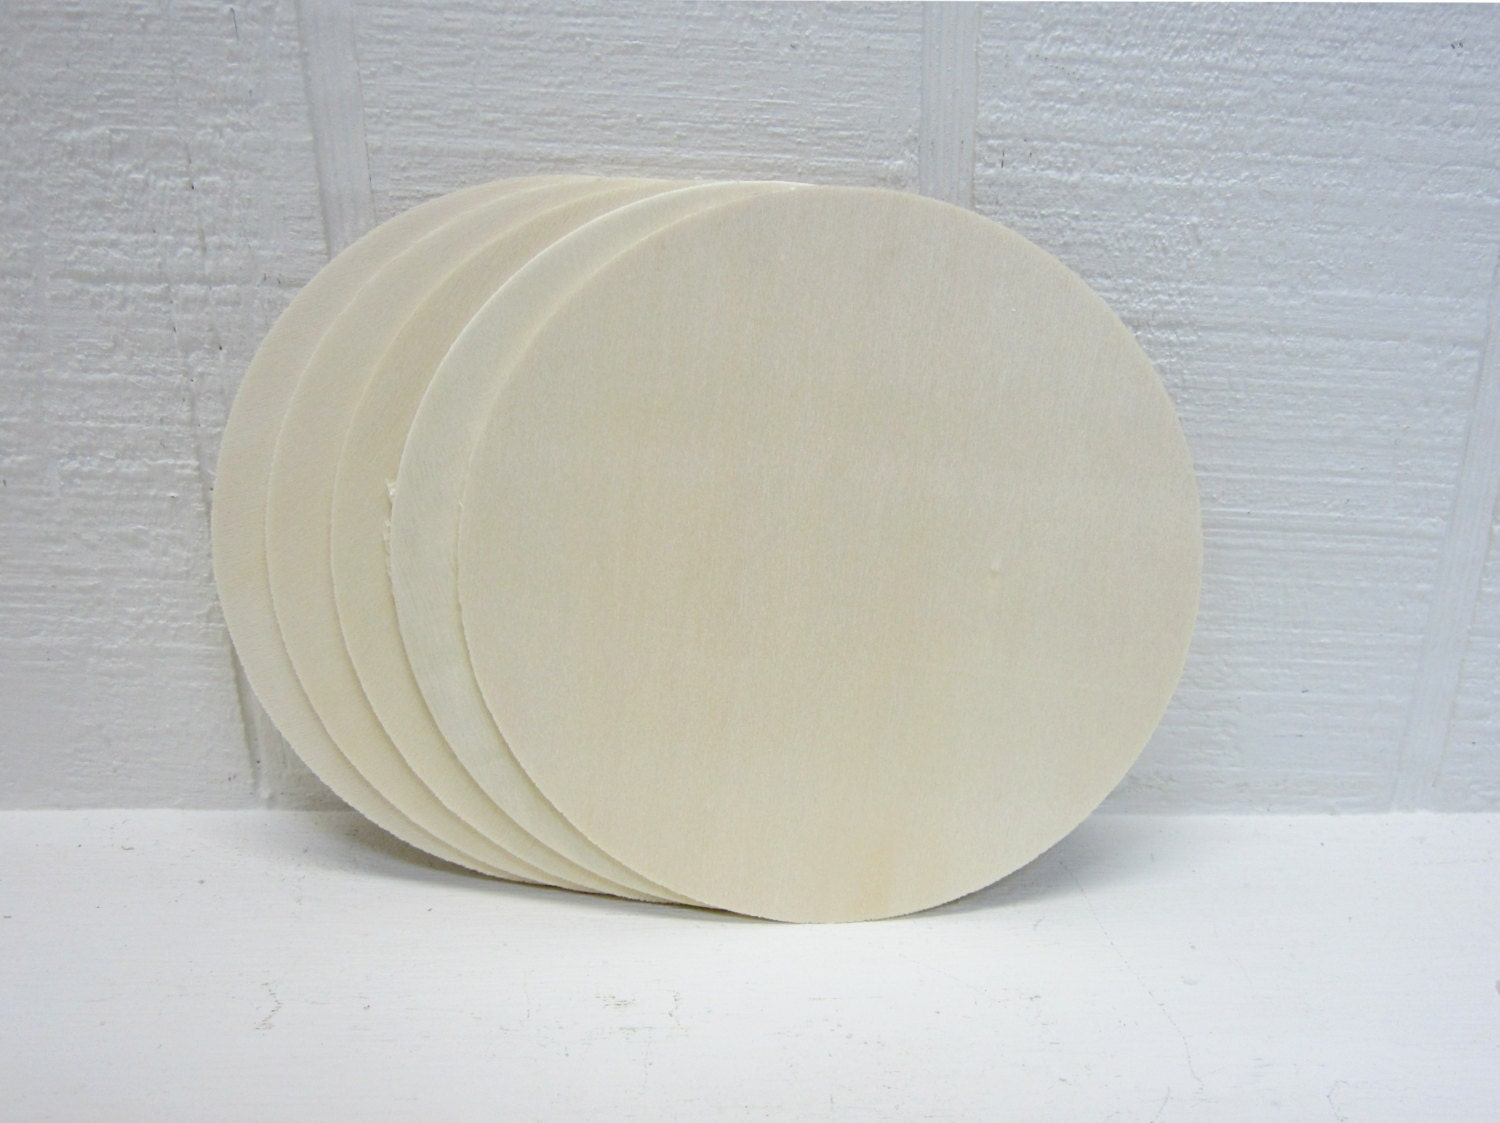 Wooden circles 4 inch unfinished for signs and craft projects for Wood circles for crafts